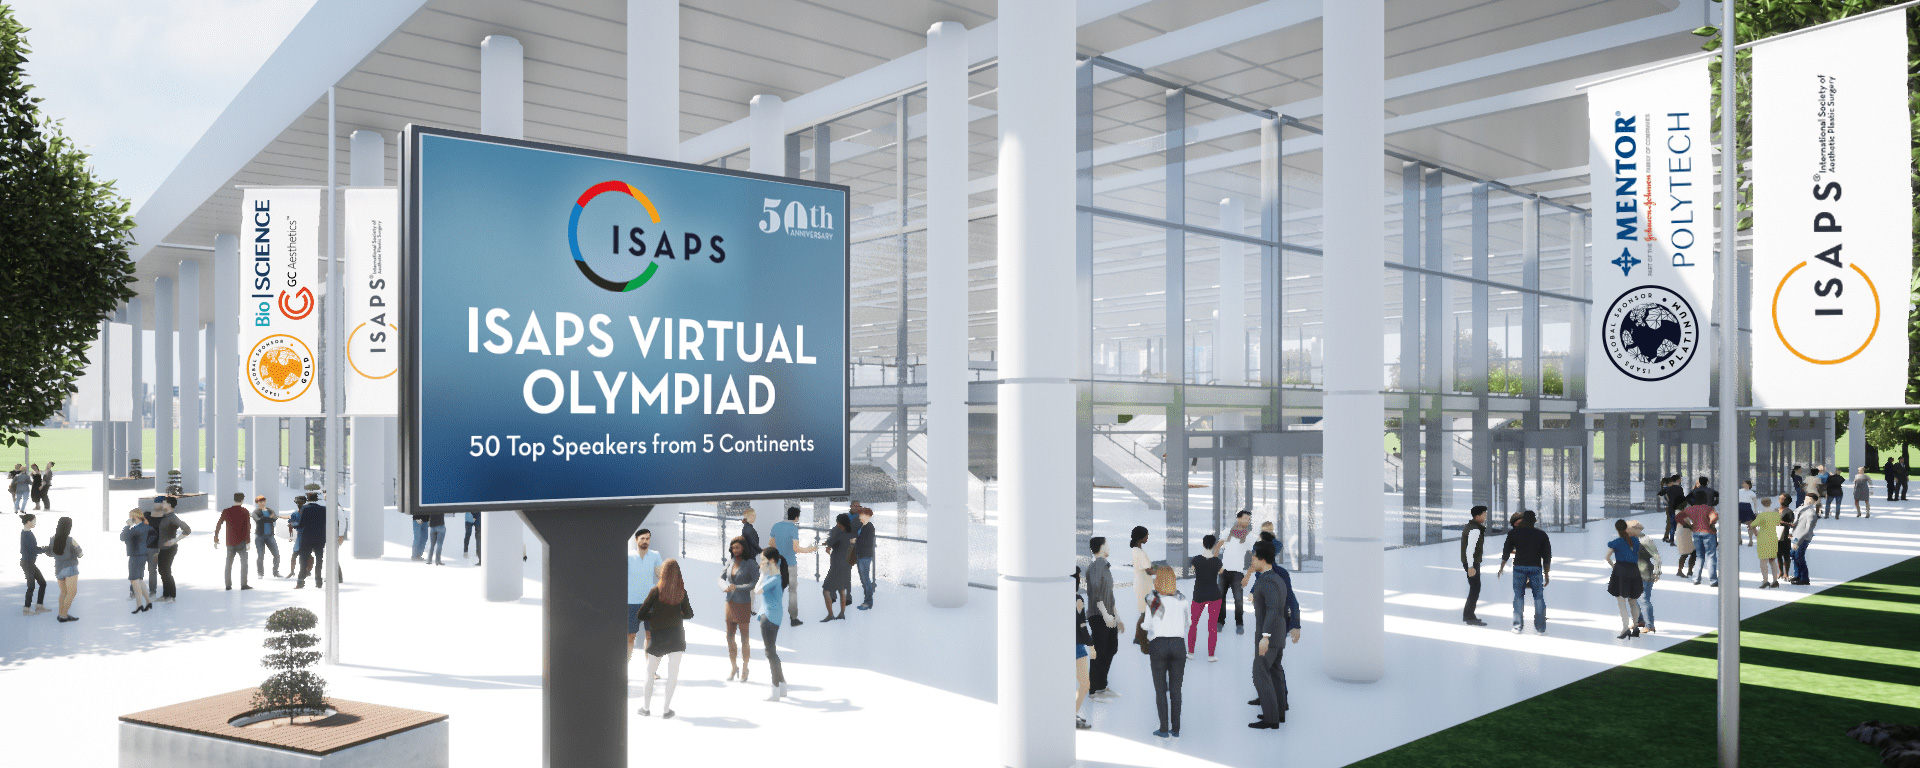 ISAPS Virtual Olympiad Entrance